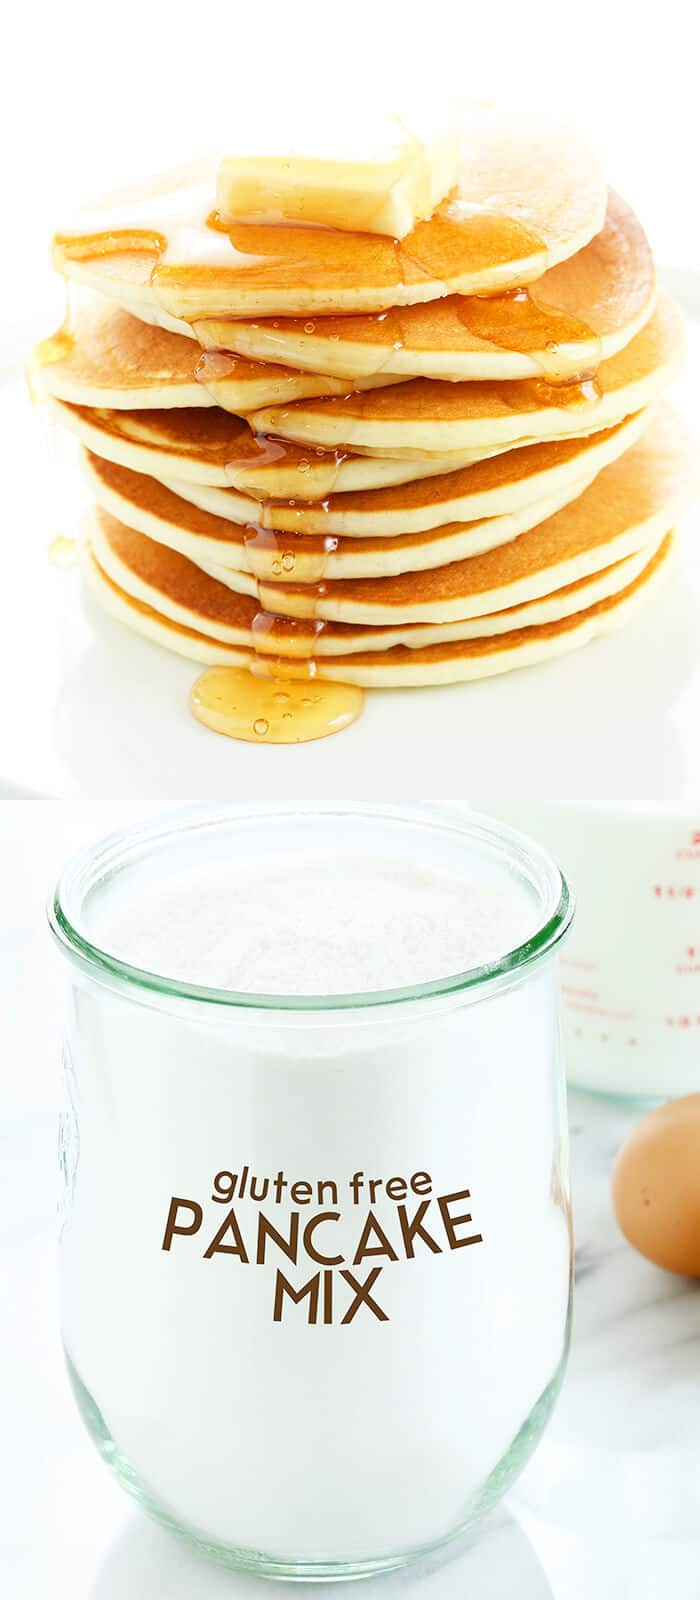 A jar with homemade pancake mix and a plate with a stack of pancakes and syrup